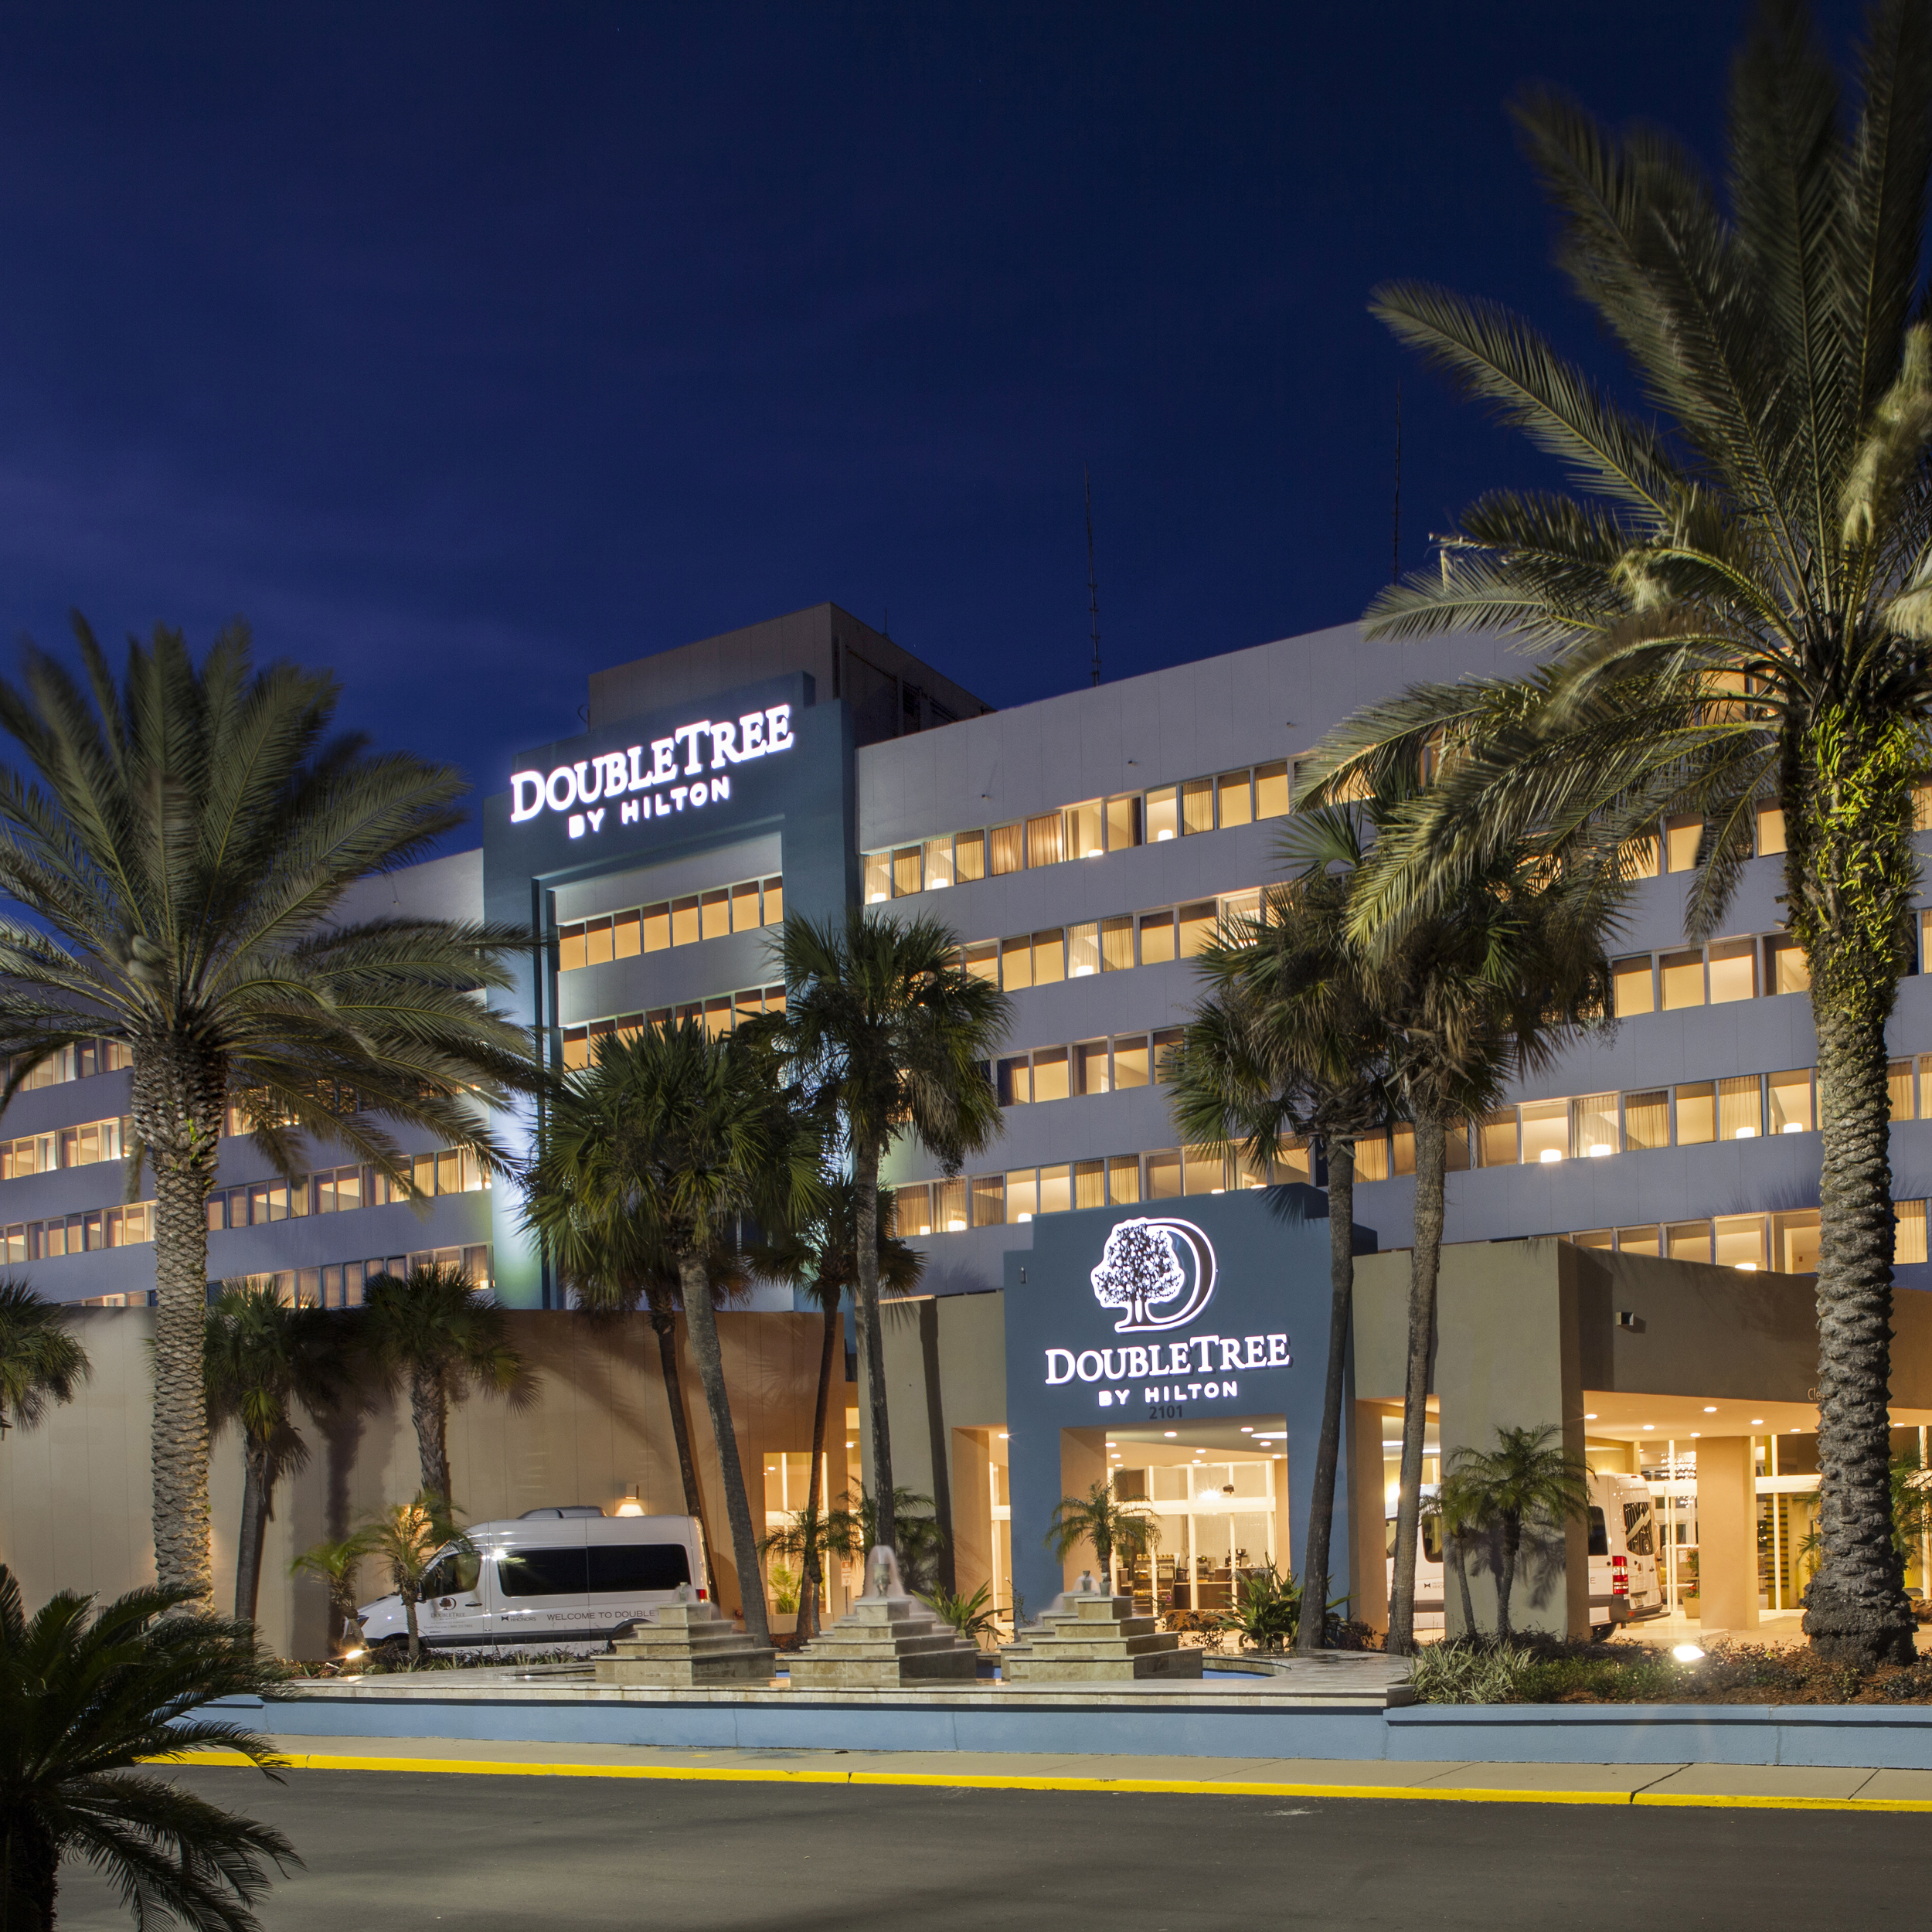 DoubleTree Jacksonville Airport